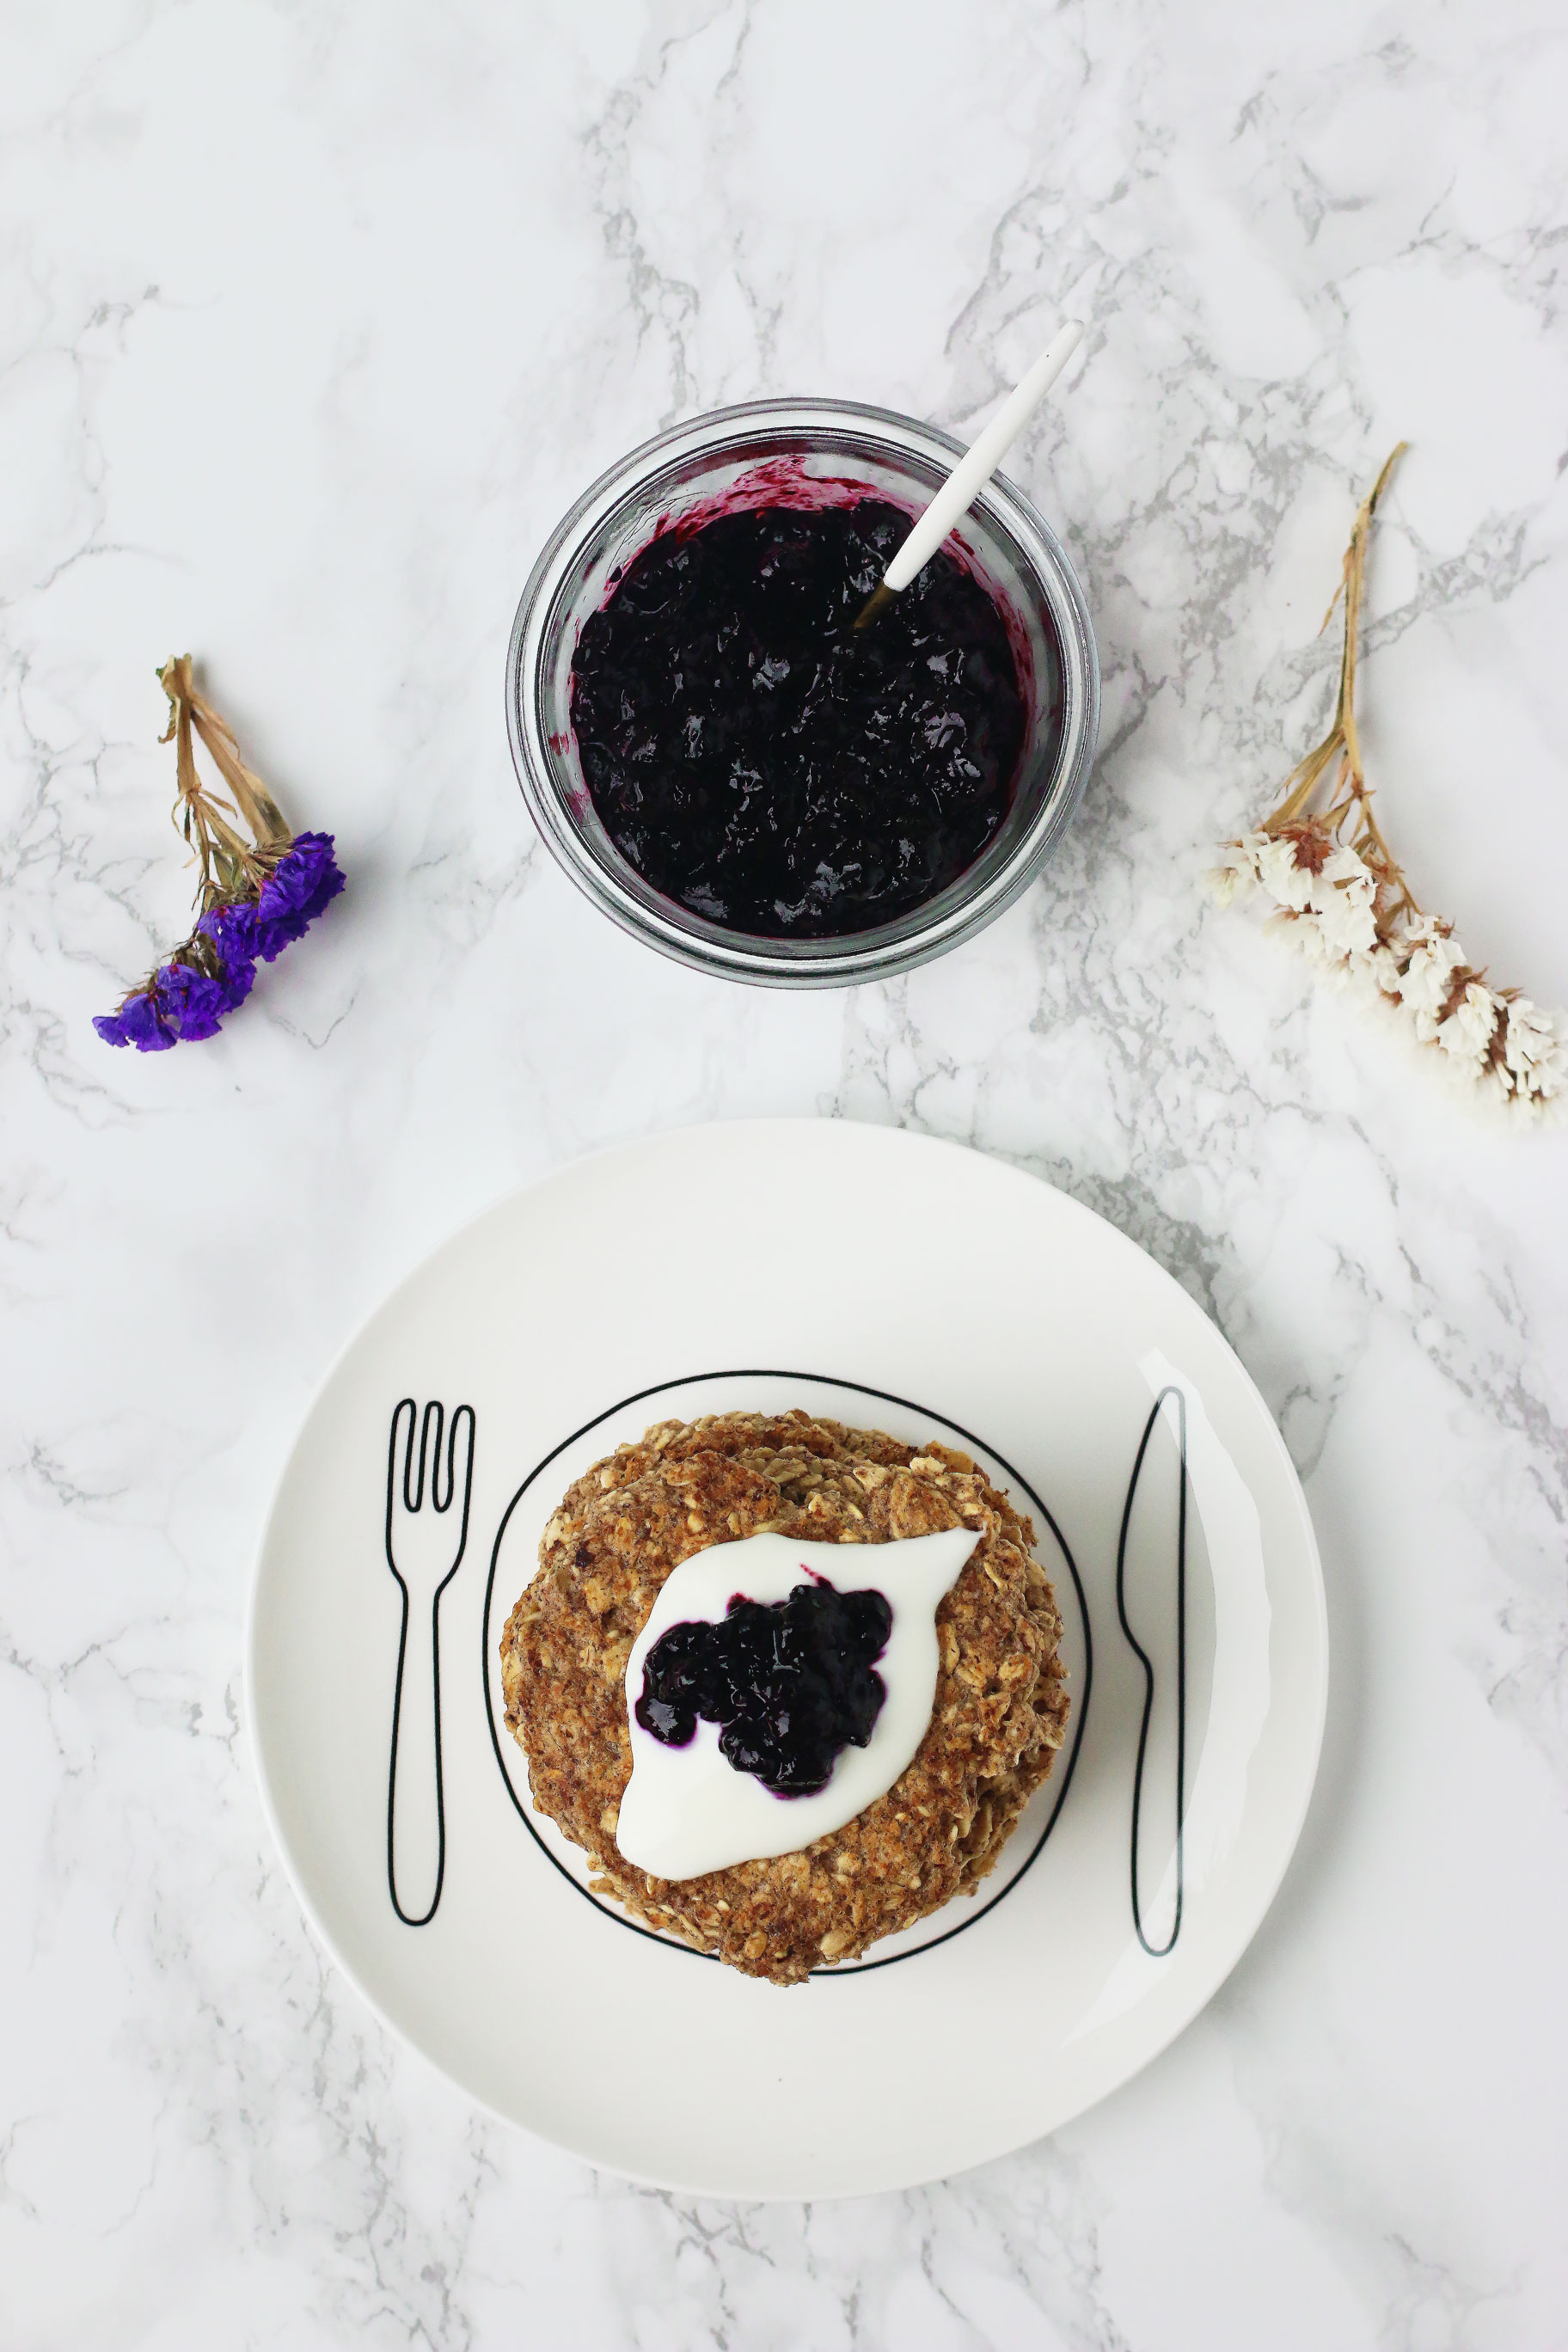 her-cookbook-club-thug-kitchen-eat-like-you-give-a-fuck-cookbook-oat-griddle-cake